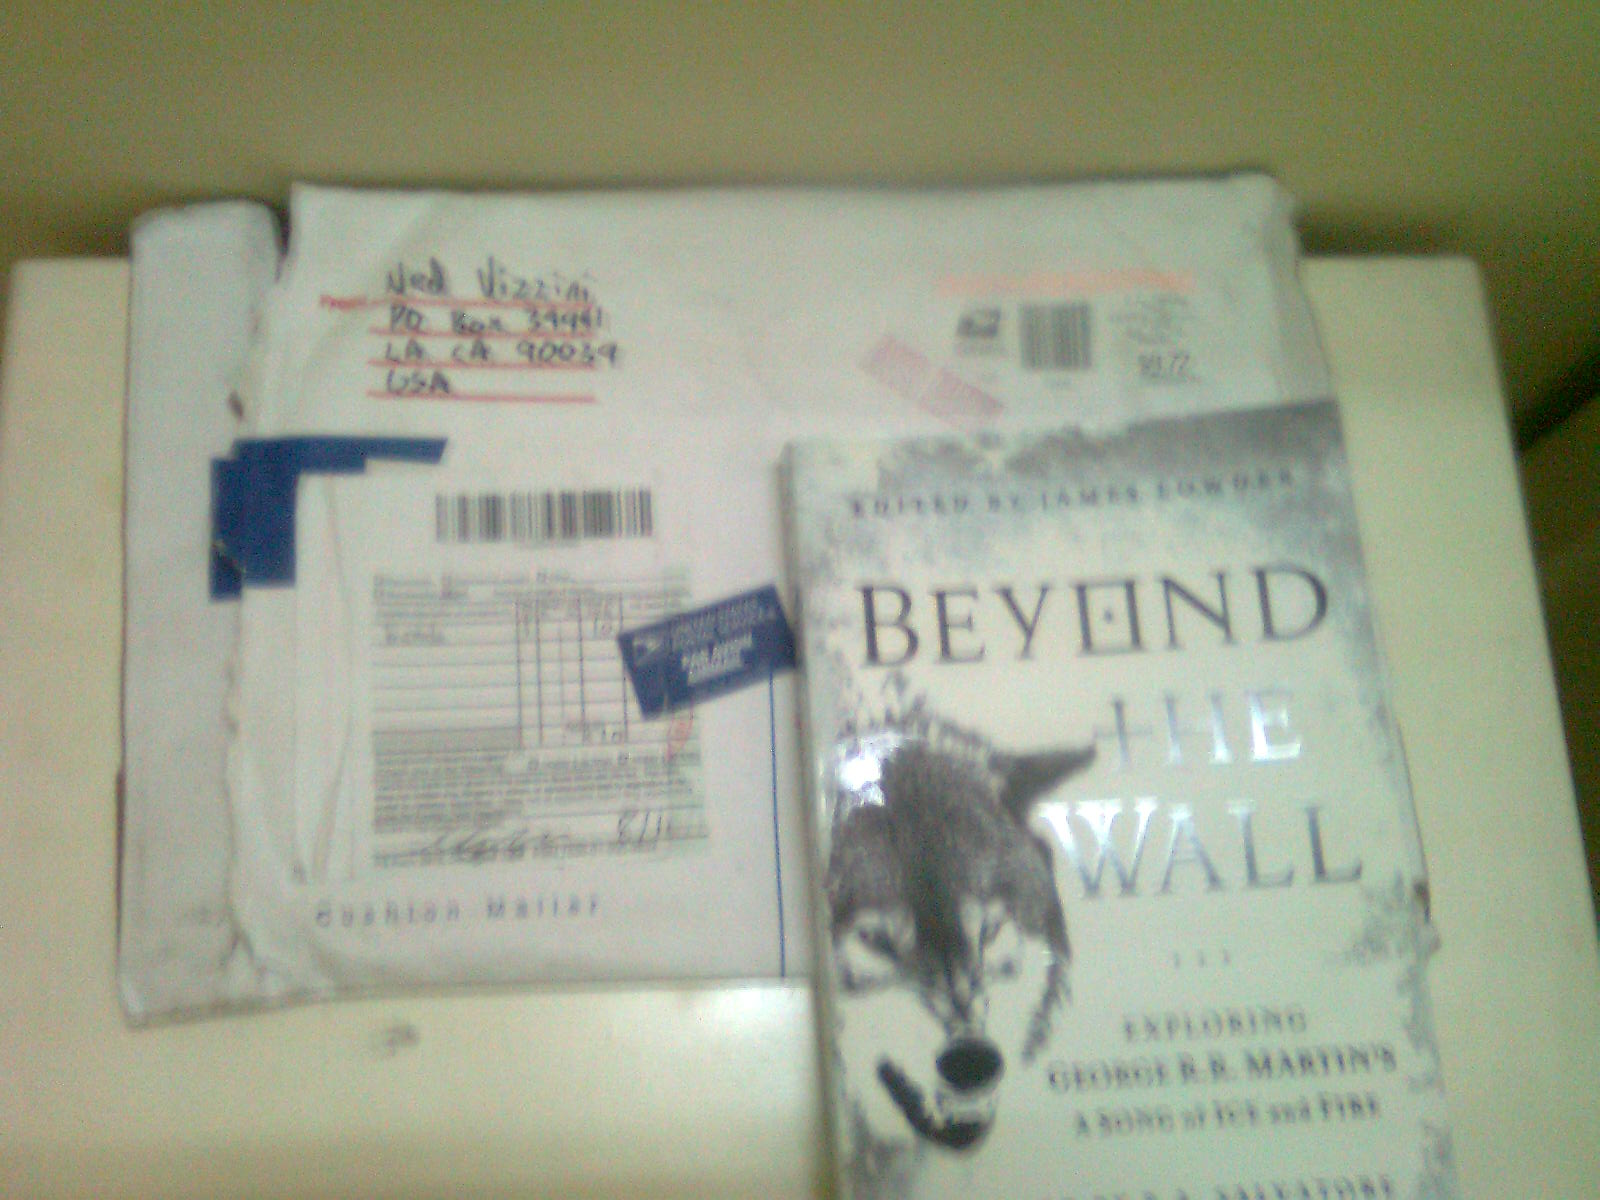 lanun reviews in the mail beyond the wall exploring george r r in the mail beyond the wall exploring george r r martin s a song of ice and fire